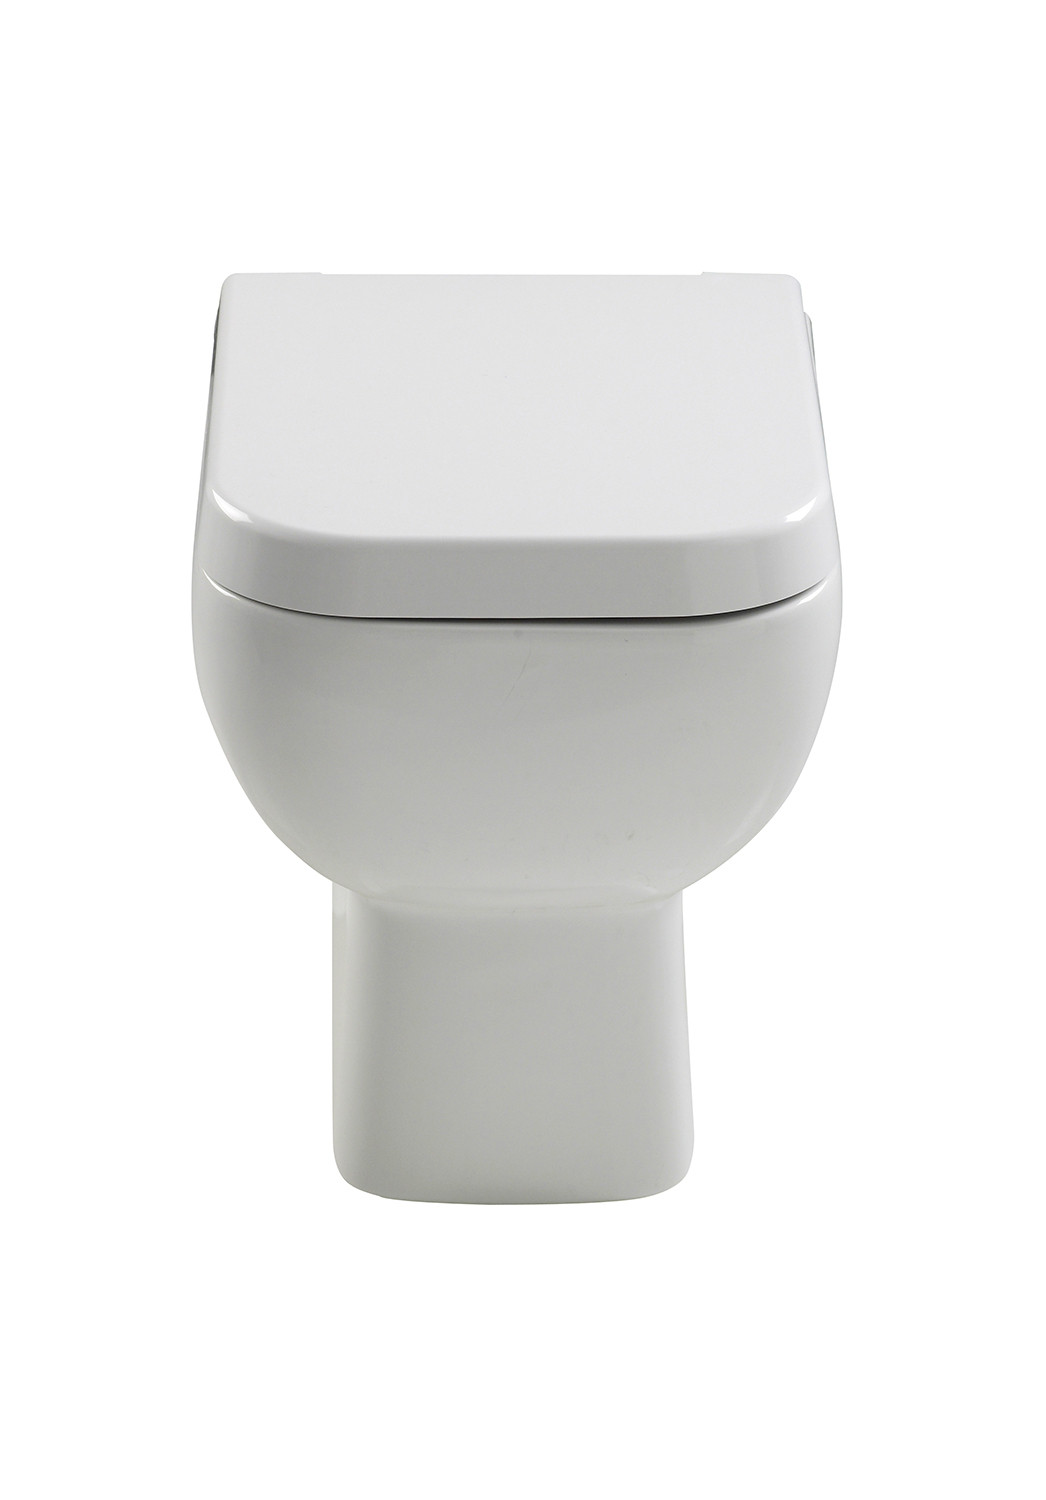 Series 600 Back-to-Wall Toilet